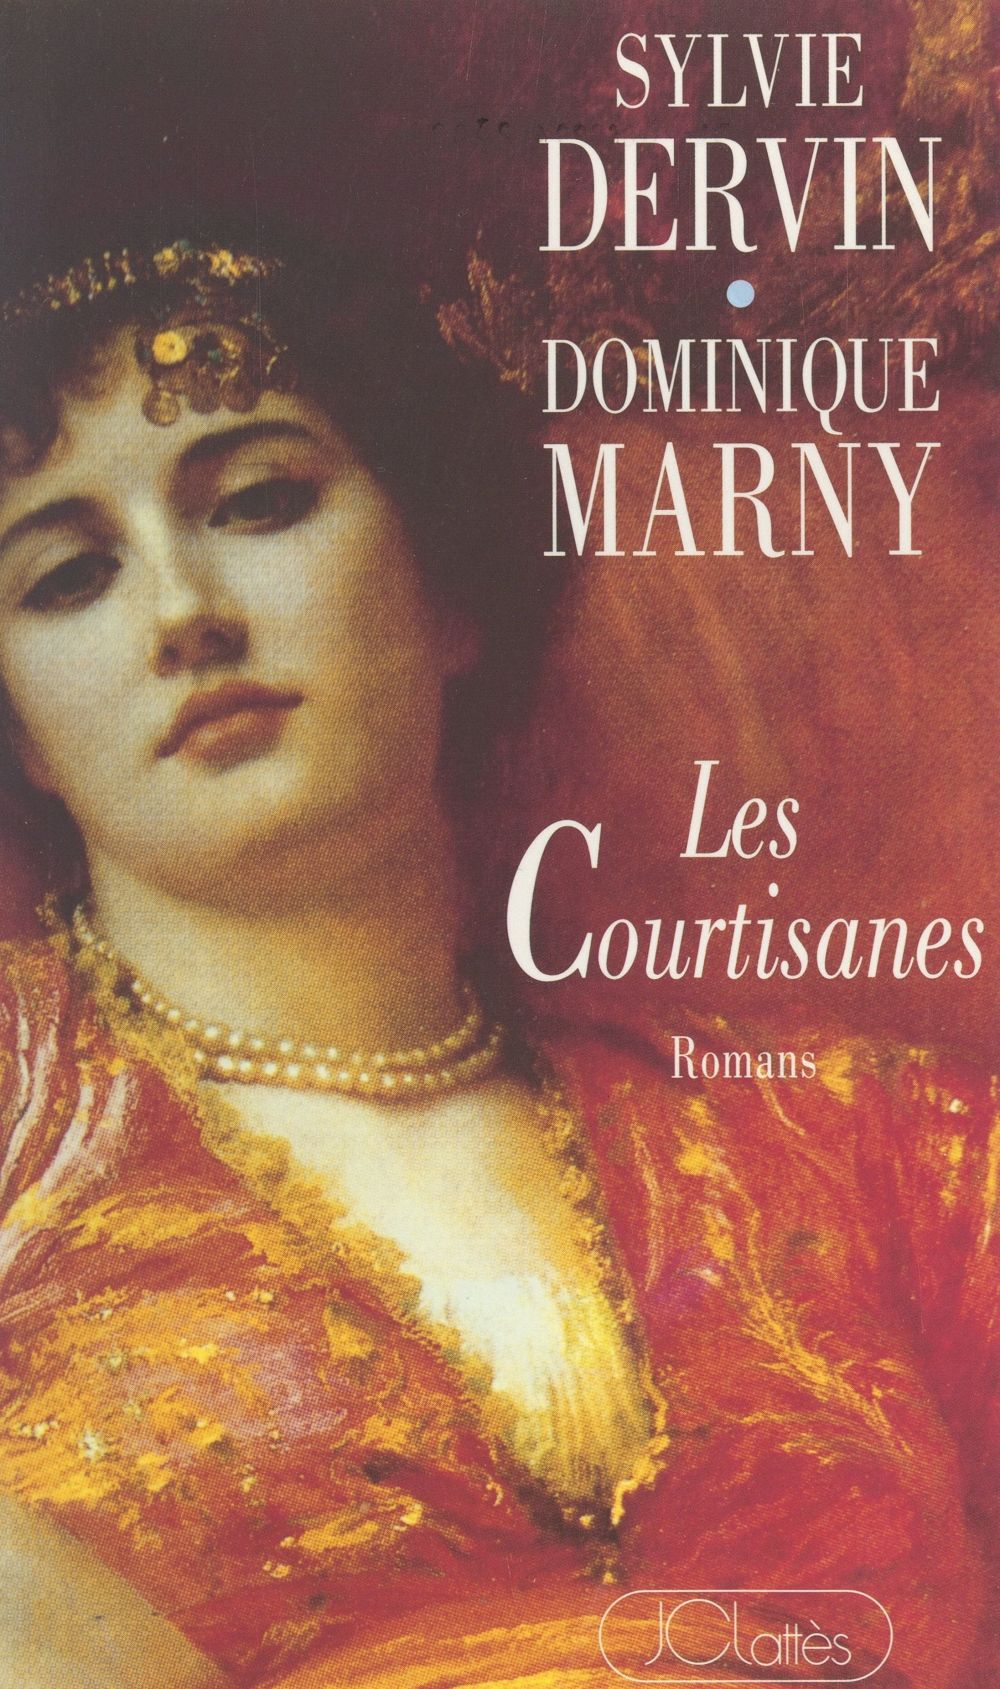 Les courtisanes